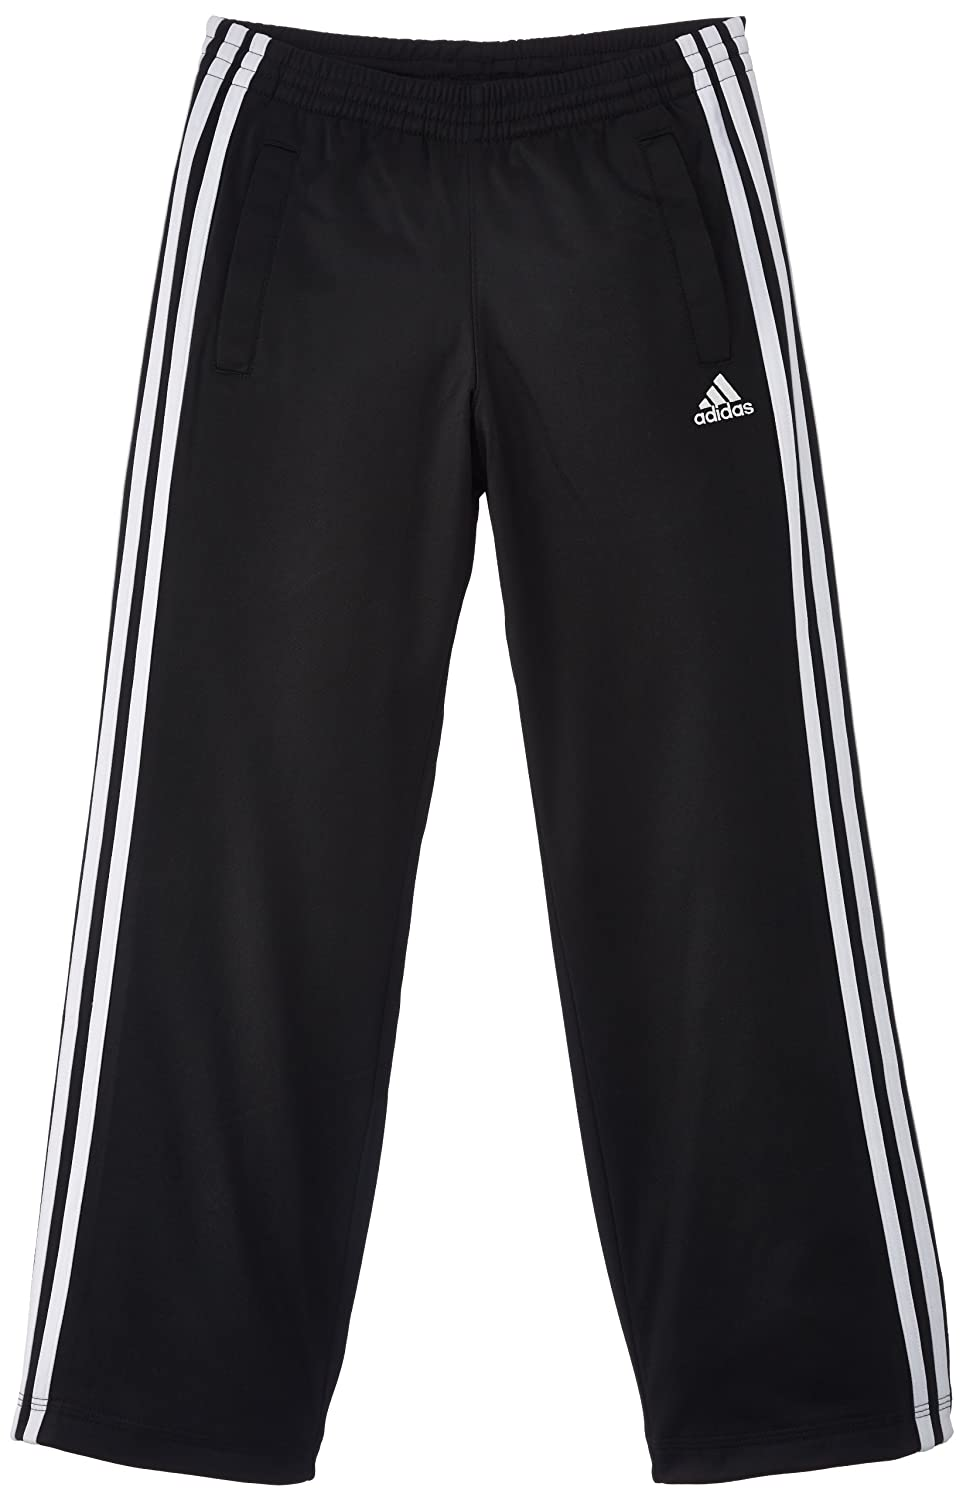 adidas ESS 3S Knit PES Pant OH Boys' Tracksuit Bottoms black Size:140:  Amazon.co.uk: Sports & Outdoors